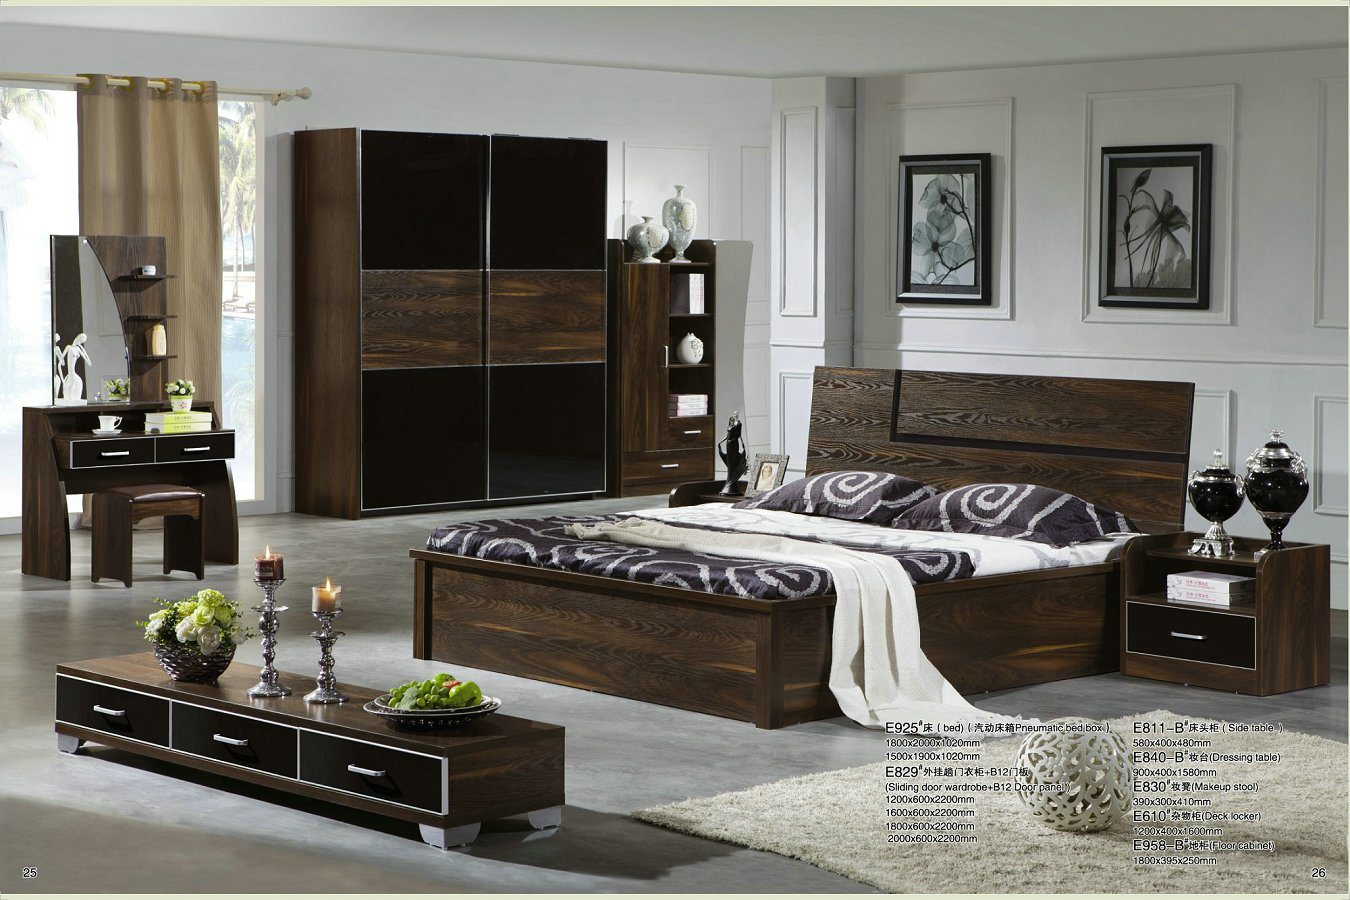 Quality Bedroom Furniture - Home Design Ideas and Pictures